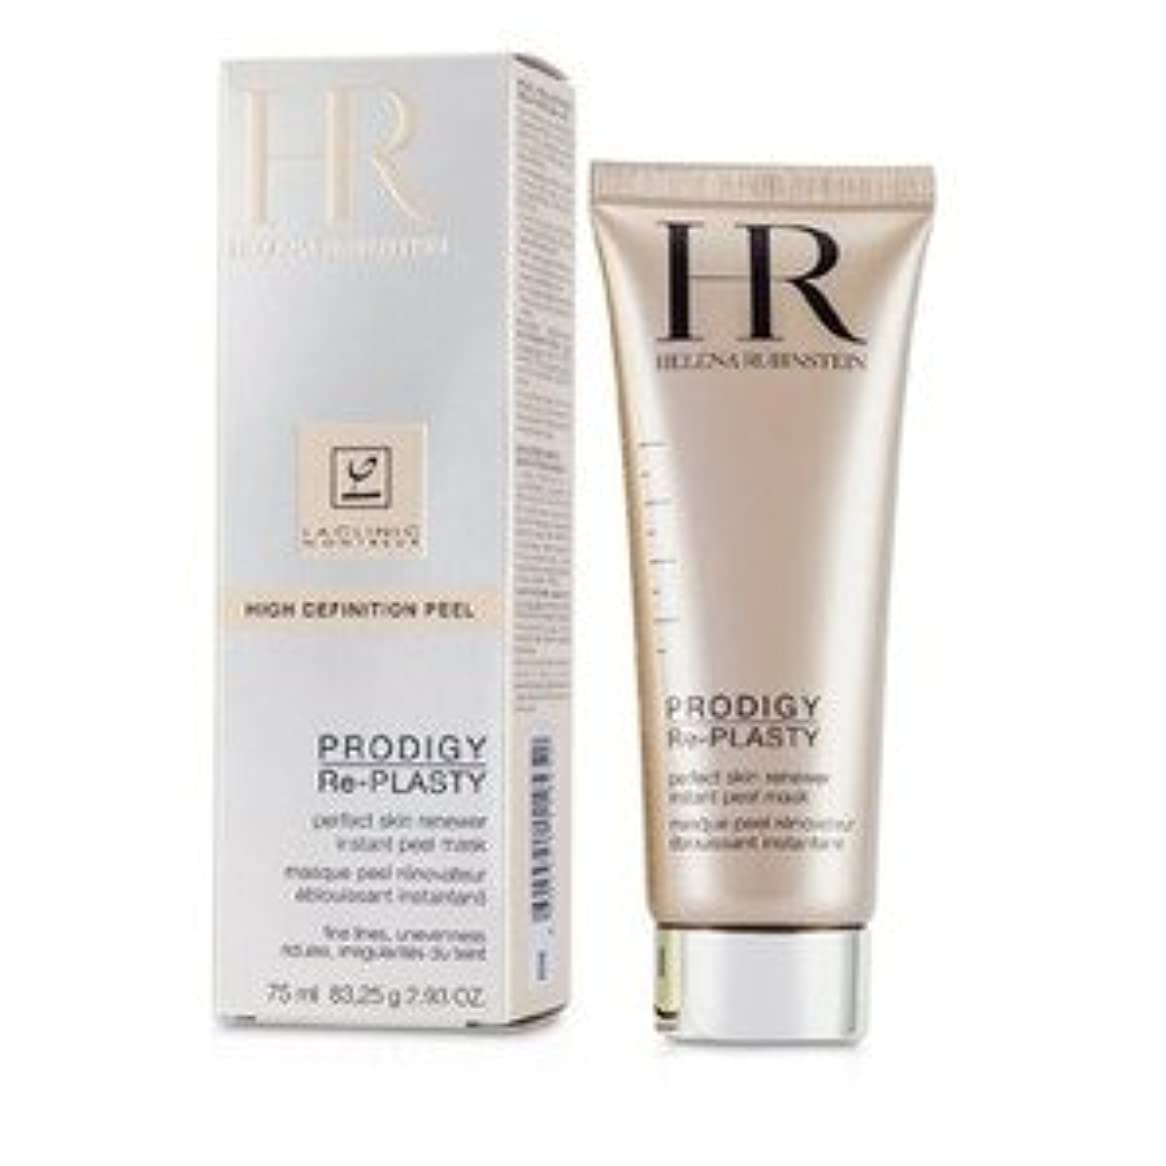 東方マイナー好ましいHelena Rubinstein(ヘレナ?ルビンスタイン) Prodigy Re-Plasty High Definition Peel Perfect Skin Renewer Instant Peel Mask 75ml...